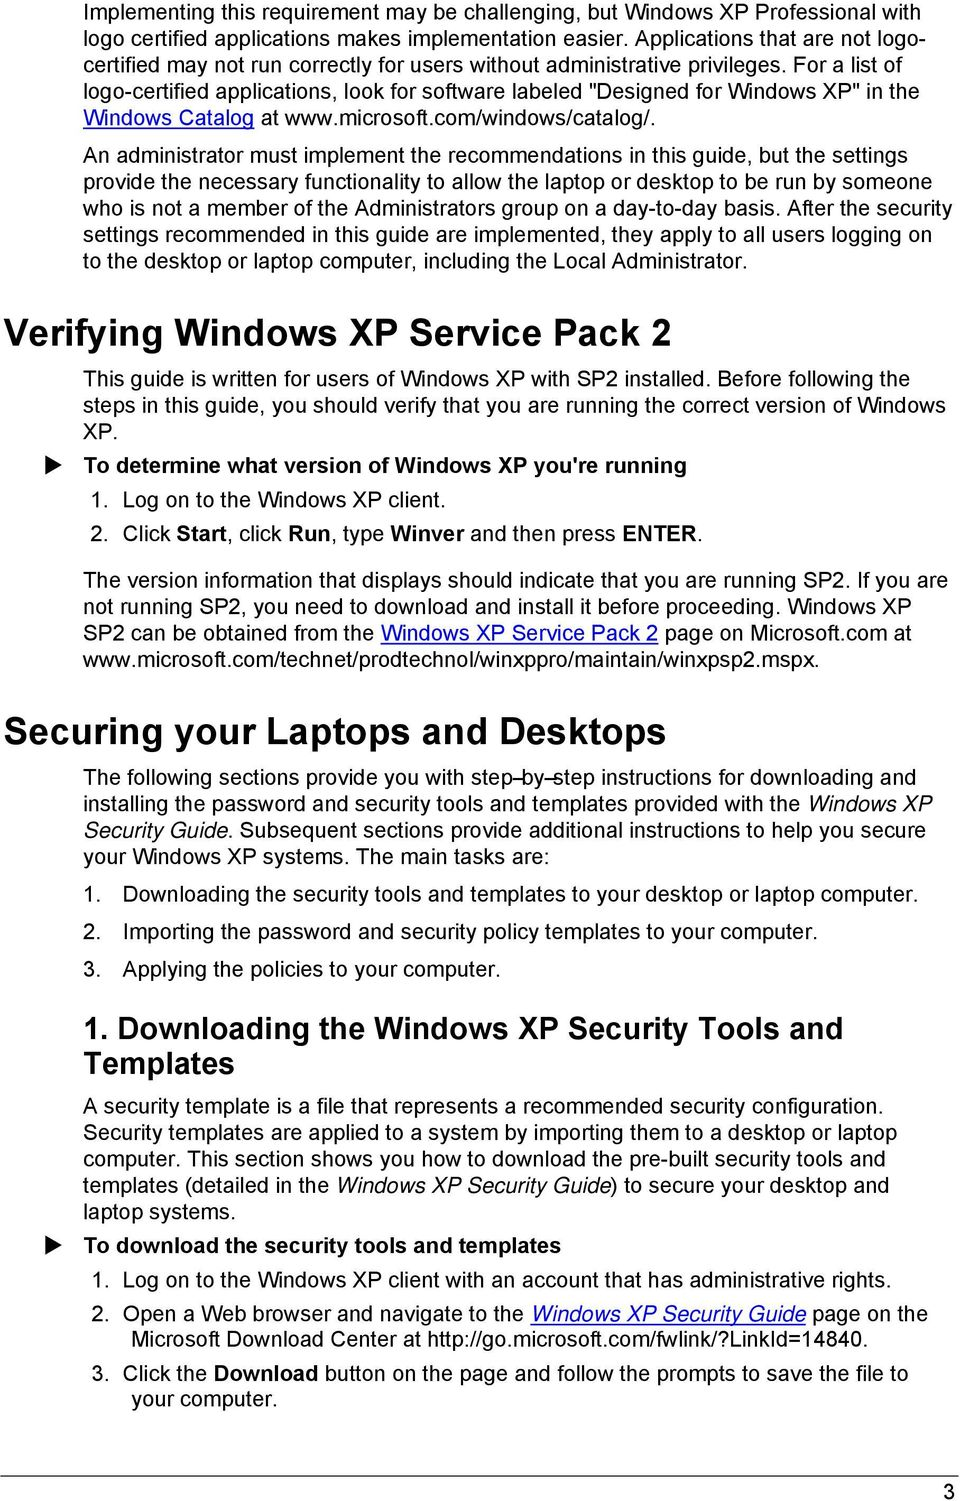 "For a list of logo-certified applications, look for software labeled ""Designed for Windows XP"" in the Windows Catalog at www.microsoft.com/windows/catalog/."